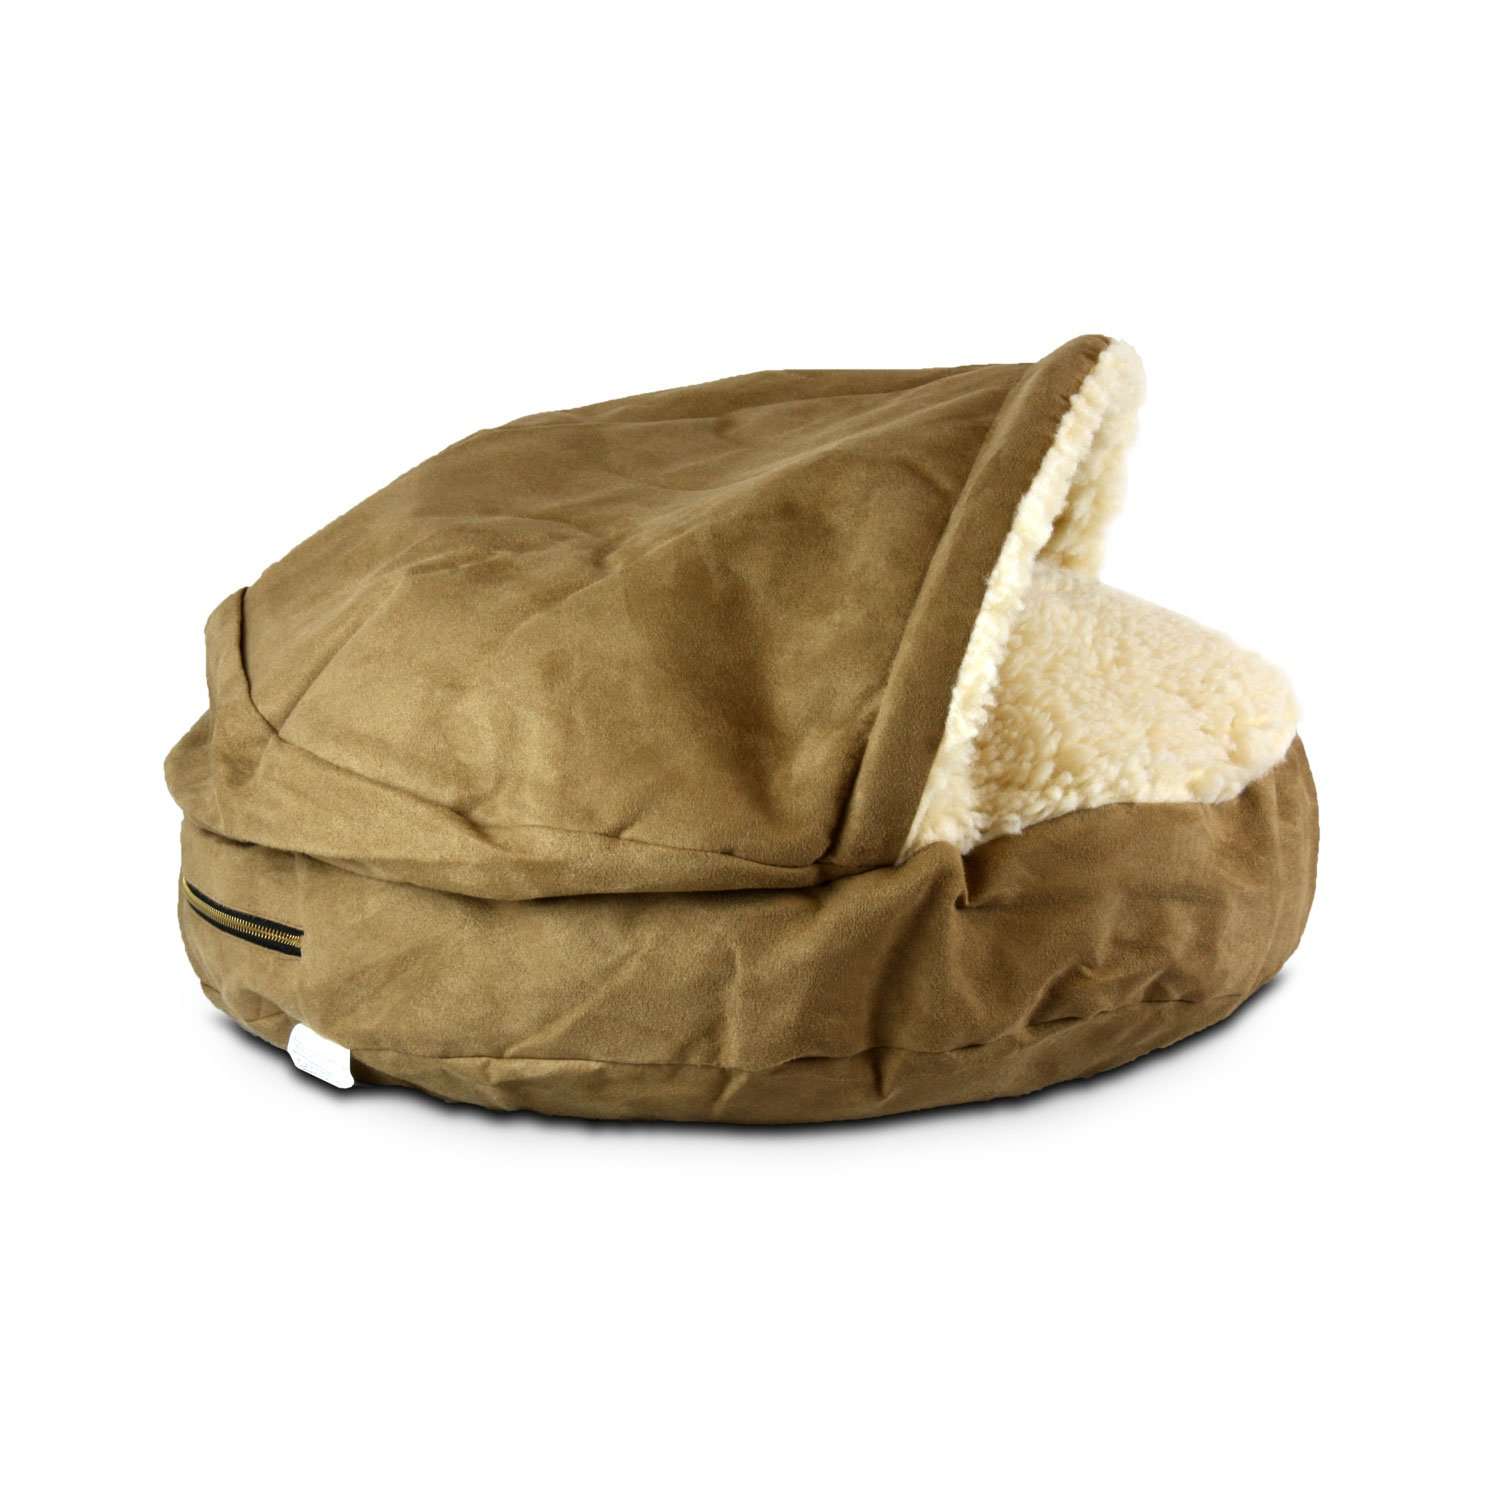 Dog Igloo Bed Australia